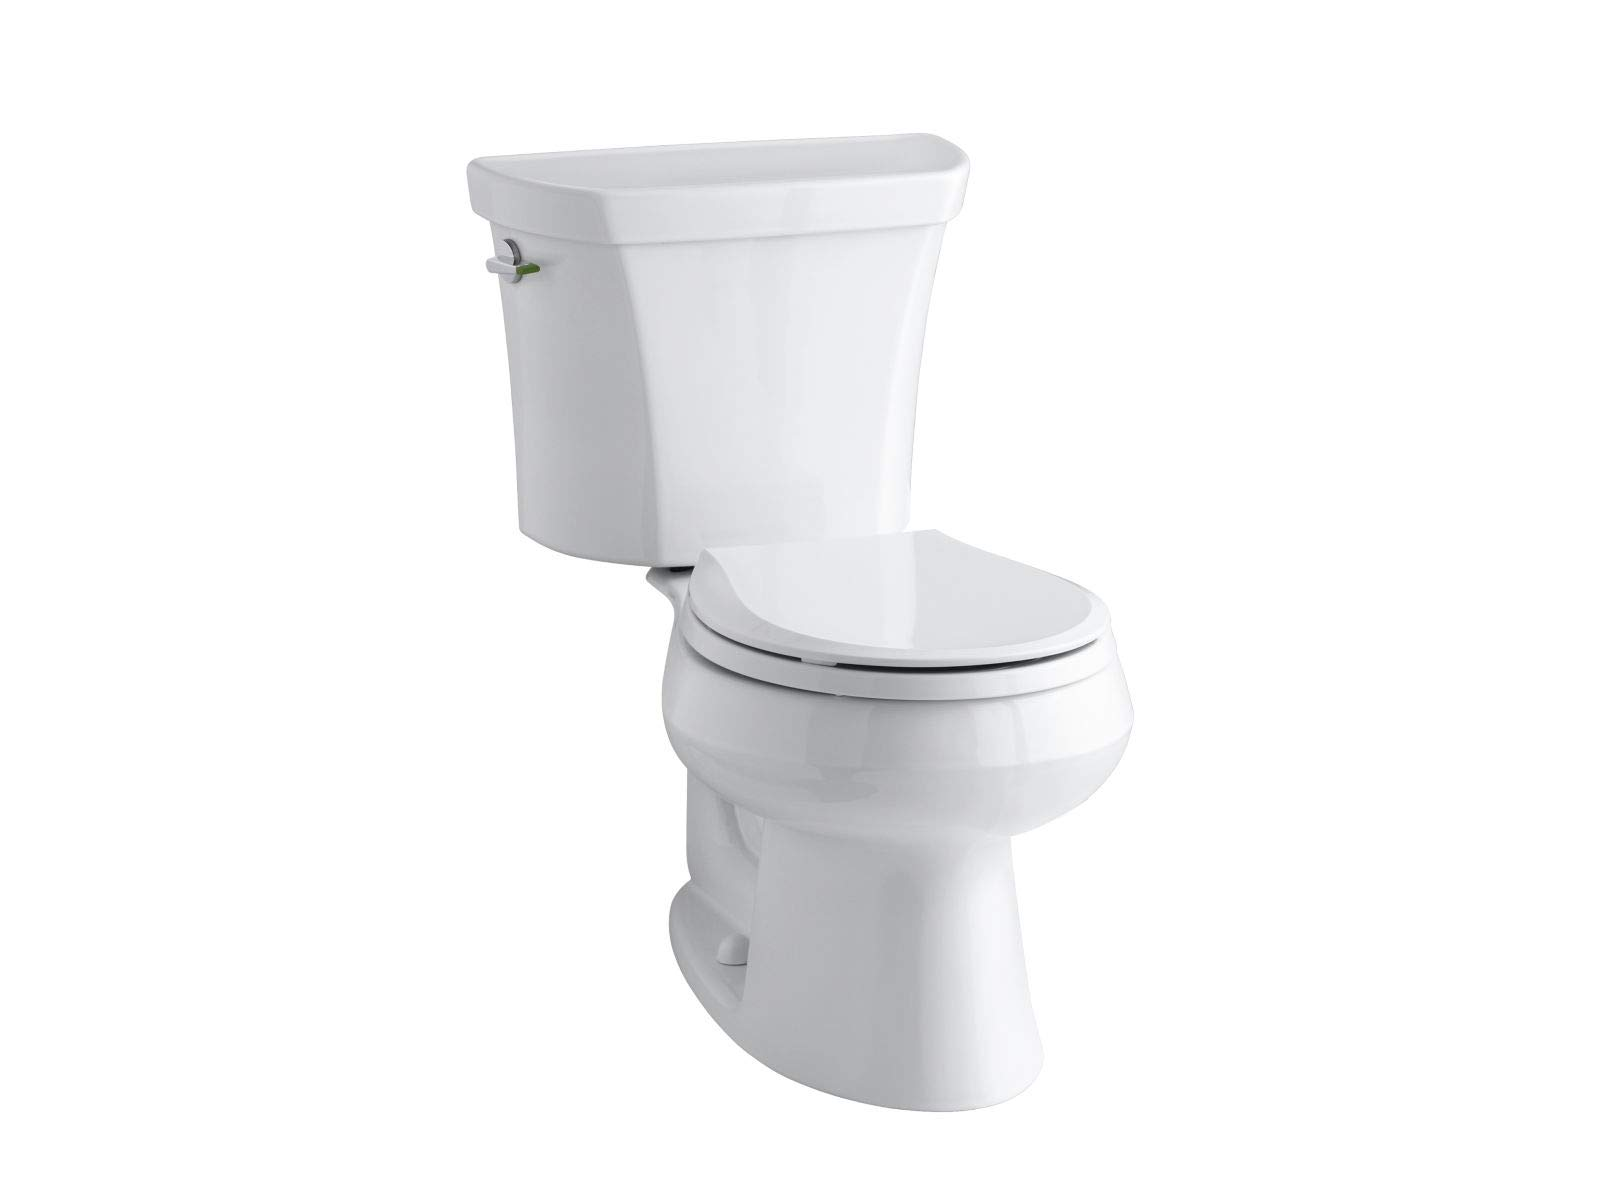 KOHLER K-3987-0 Wellworth Two-Piece Round-Front Dual-Flush Toilet with Class Five Flush System and Left-Hand Trip Lever, White by Kohler